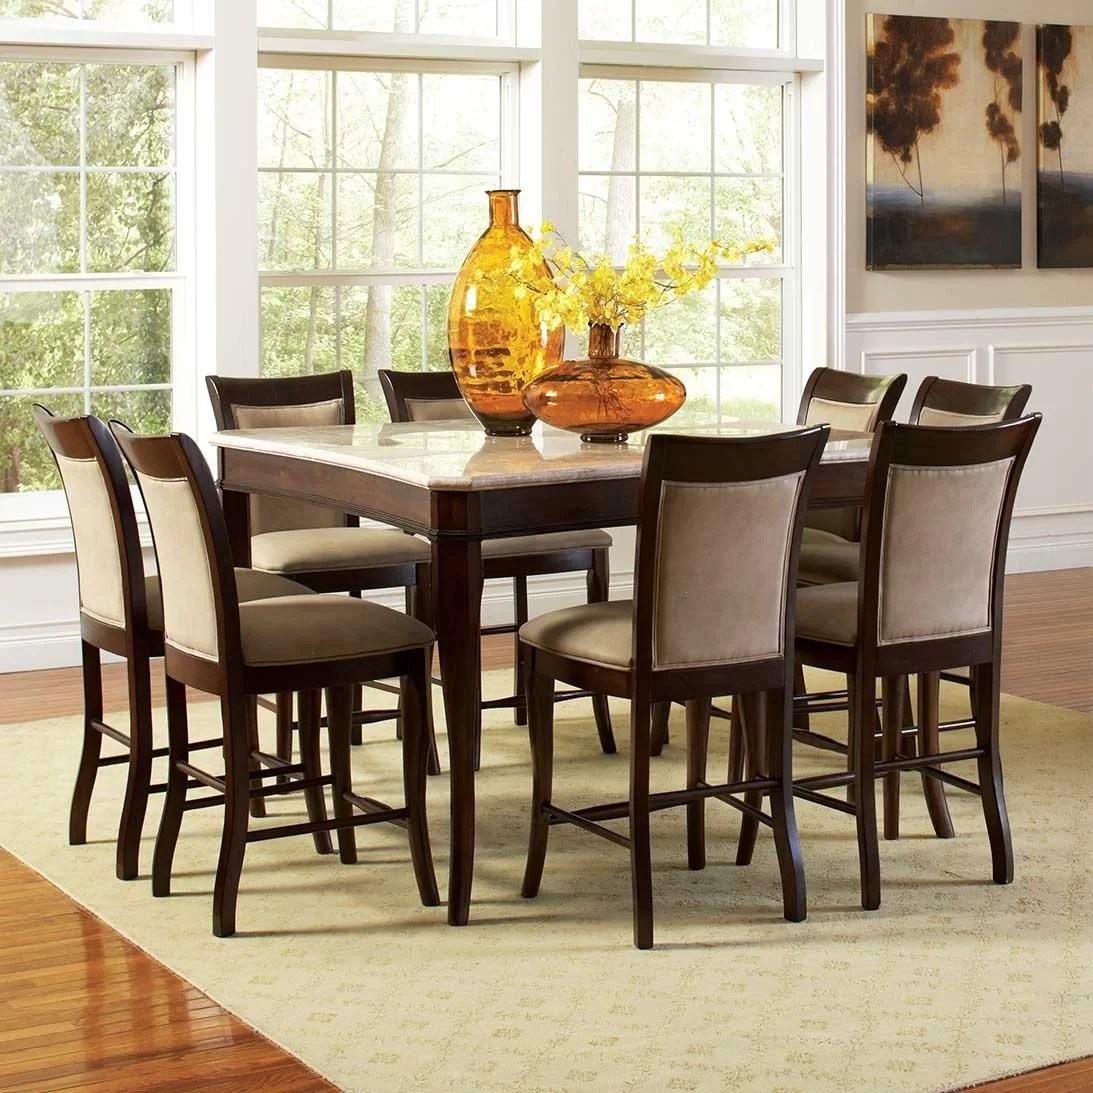 square kitchen dining tables c a~ square kitchen table Swenson Counter Height Dining Table